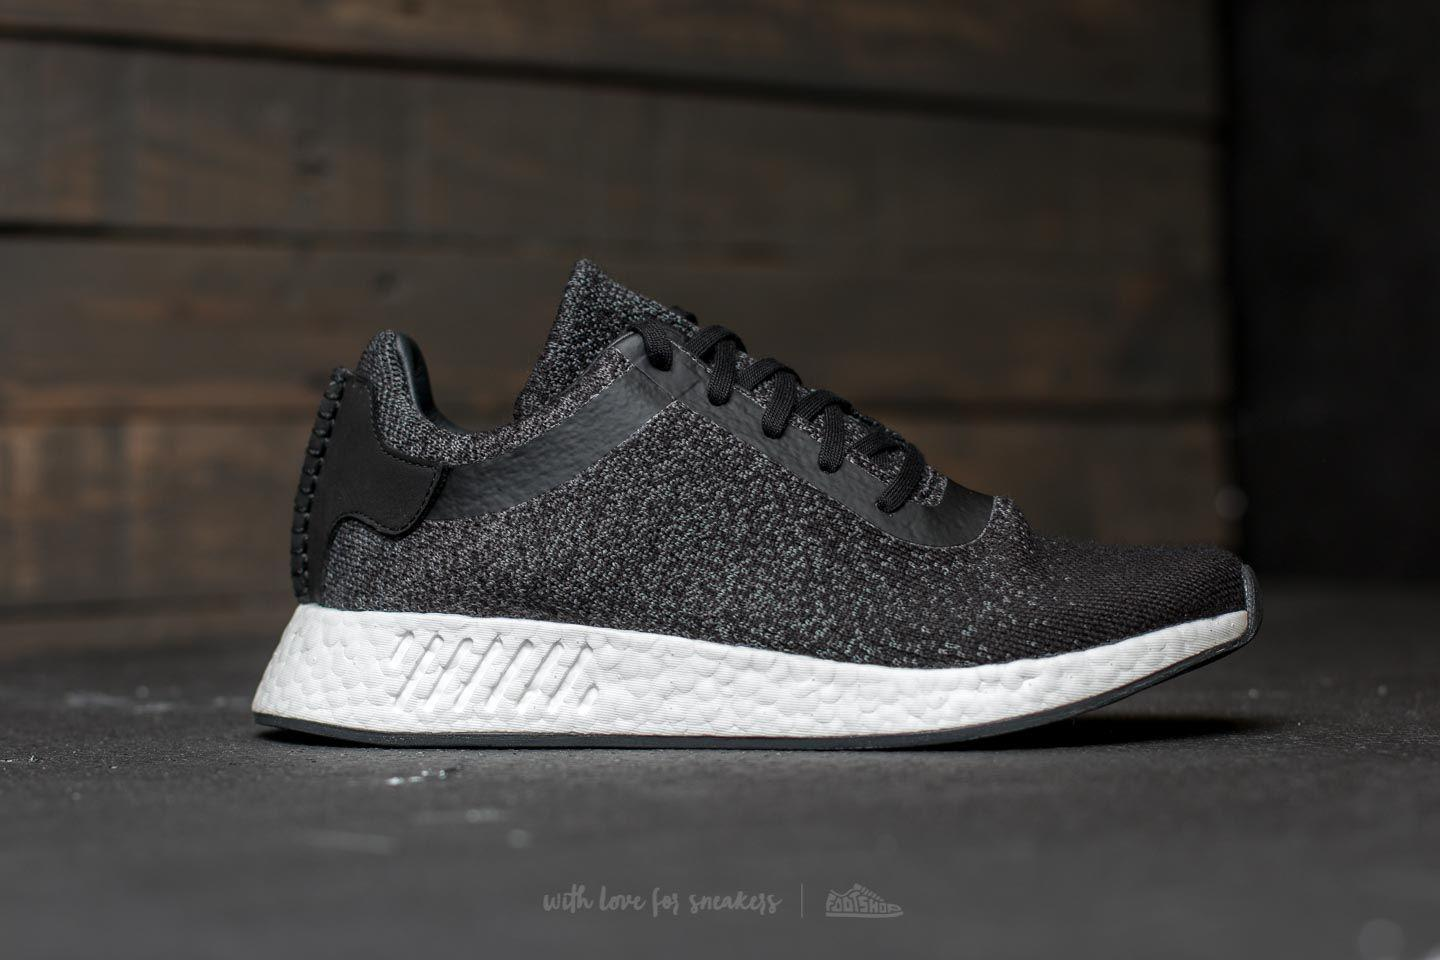 free shipping 97205 203d5 adidas Originals Adidas Wings + Horns Nmd R2 Core Black  Utility ...